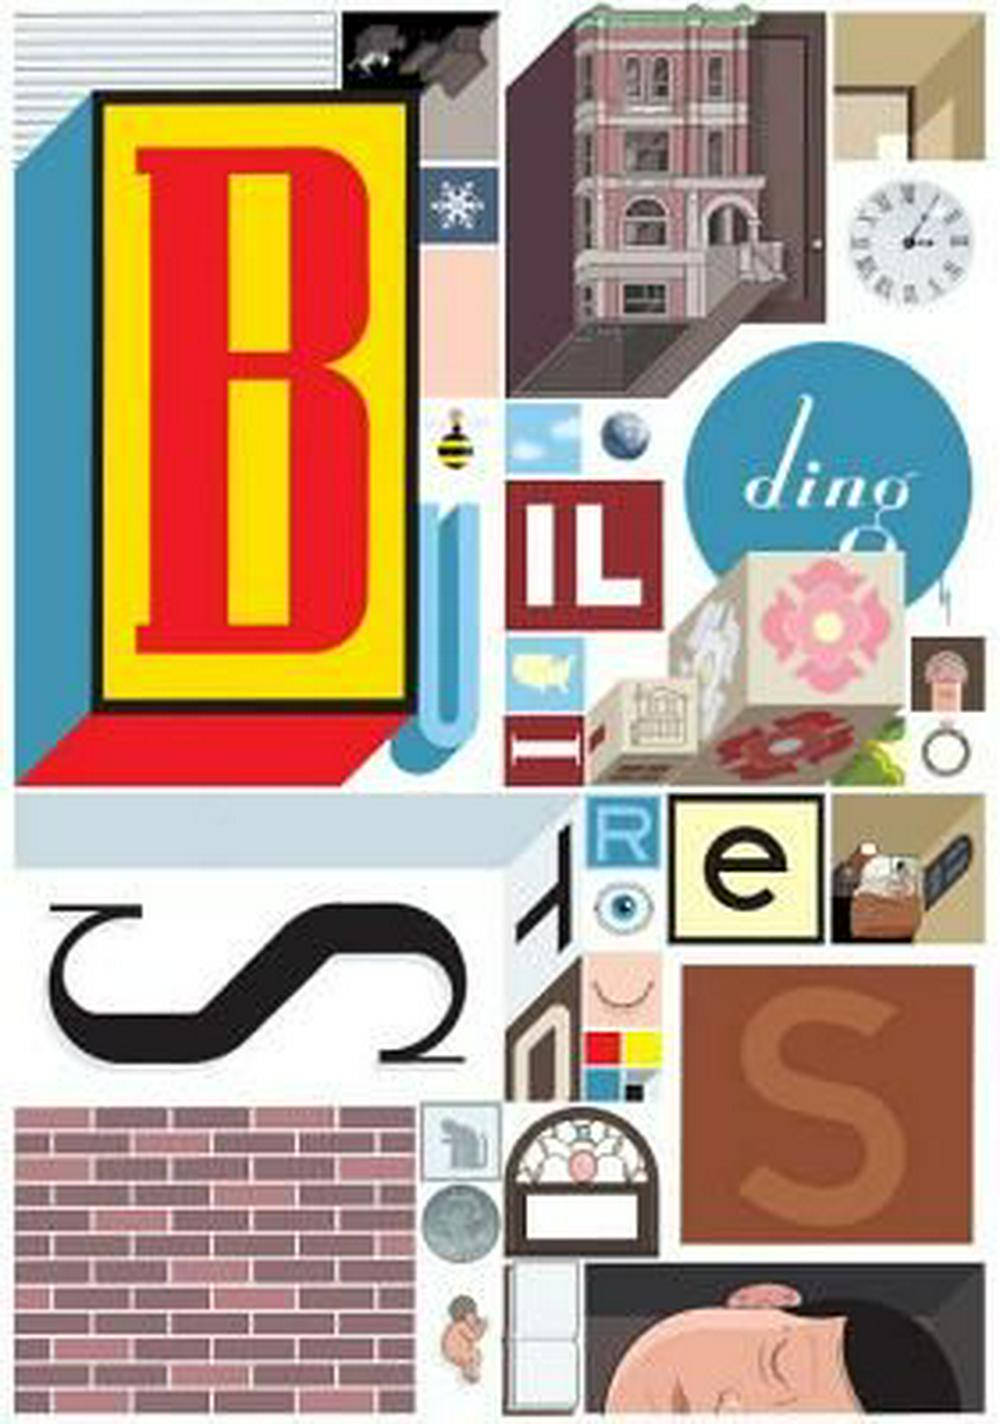 Building Stories by Chris Ware, ISBN: 9780375424335